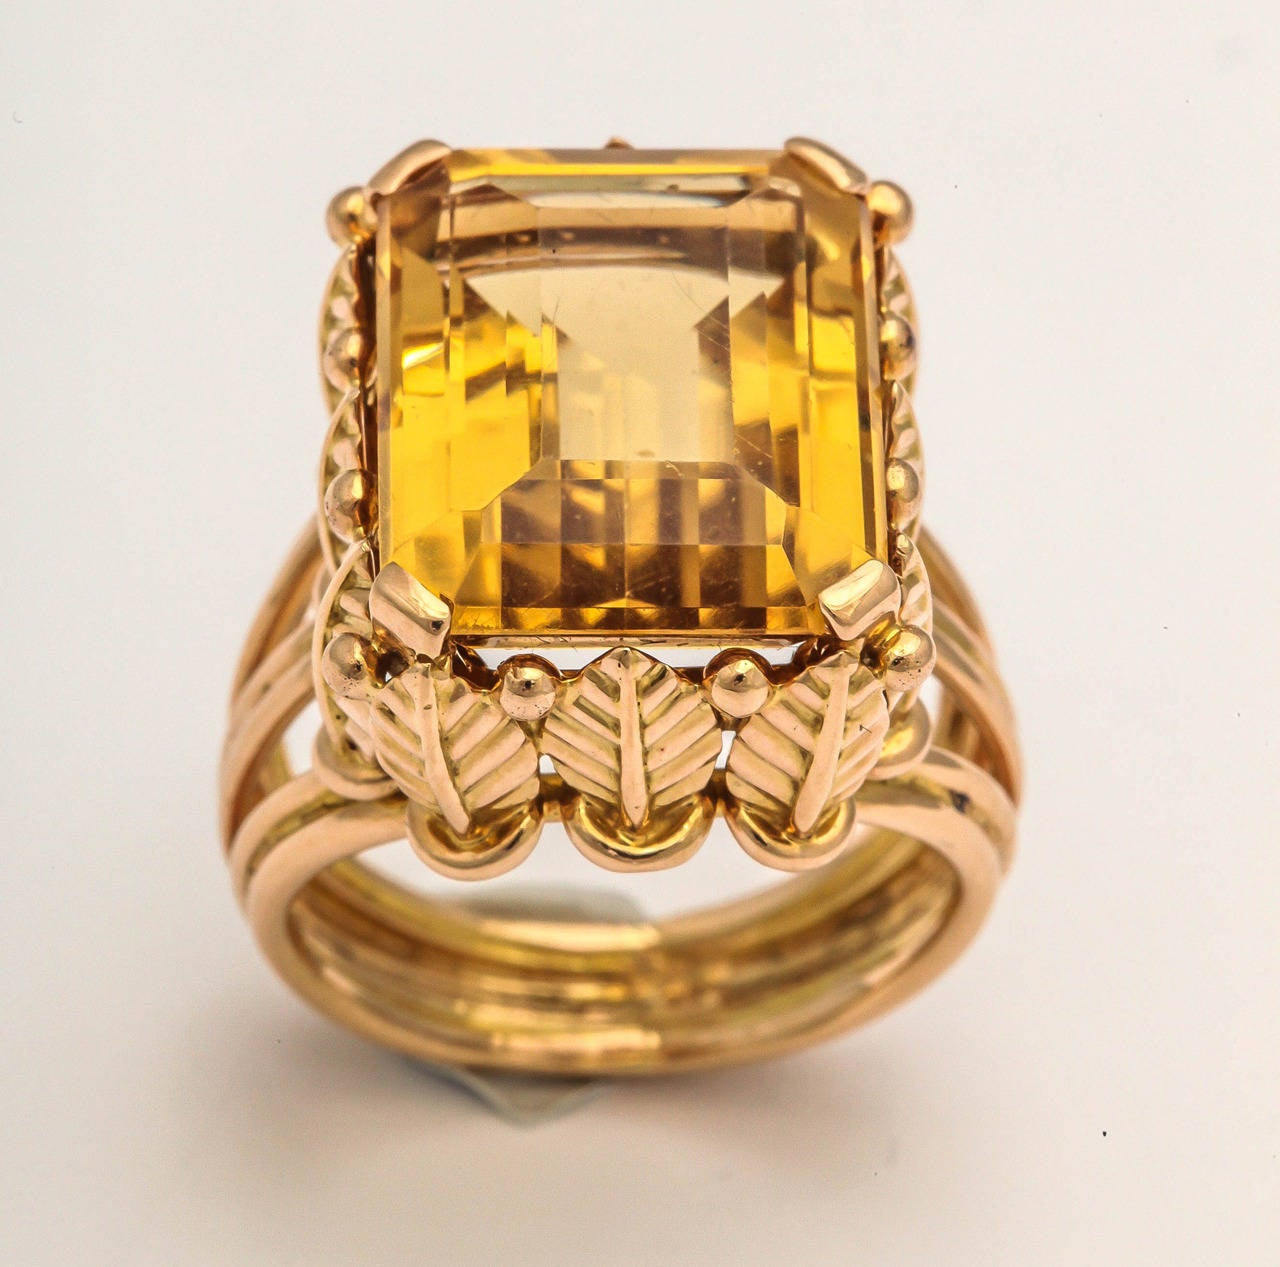 1970s French Citrine 18k Gold Cocktail Ring, Paris For Sale 1